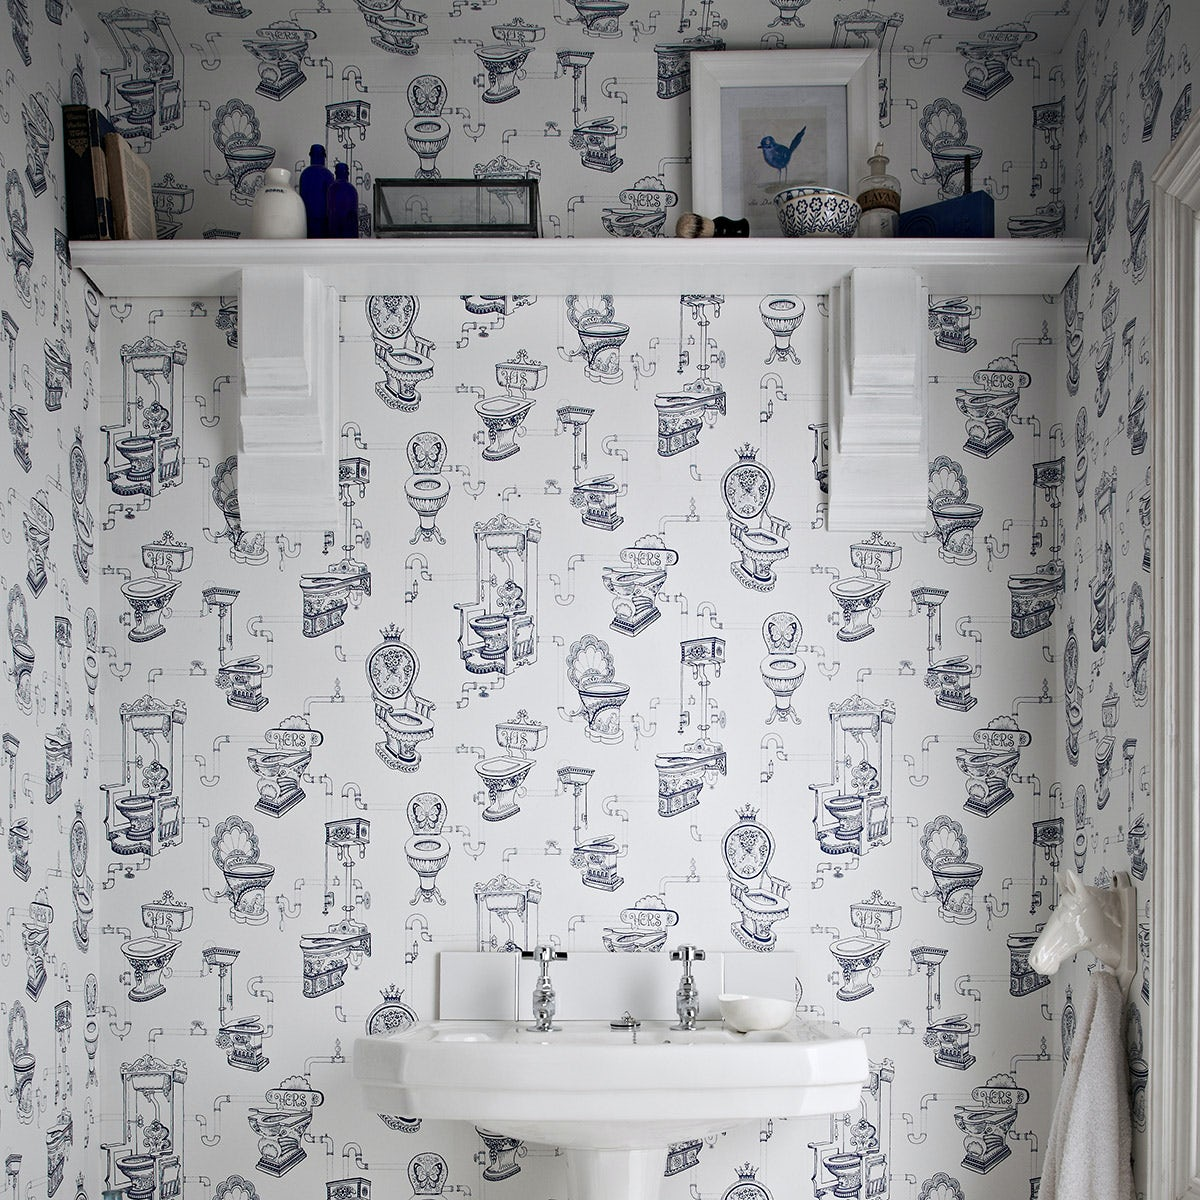 Loo loo kitchen and bathroom wallpaper for Graham and brown bathroom wallpaper